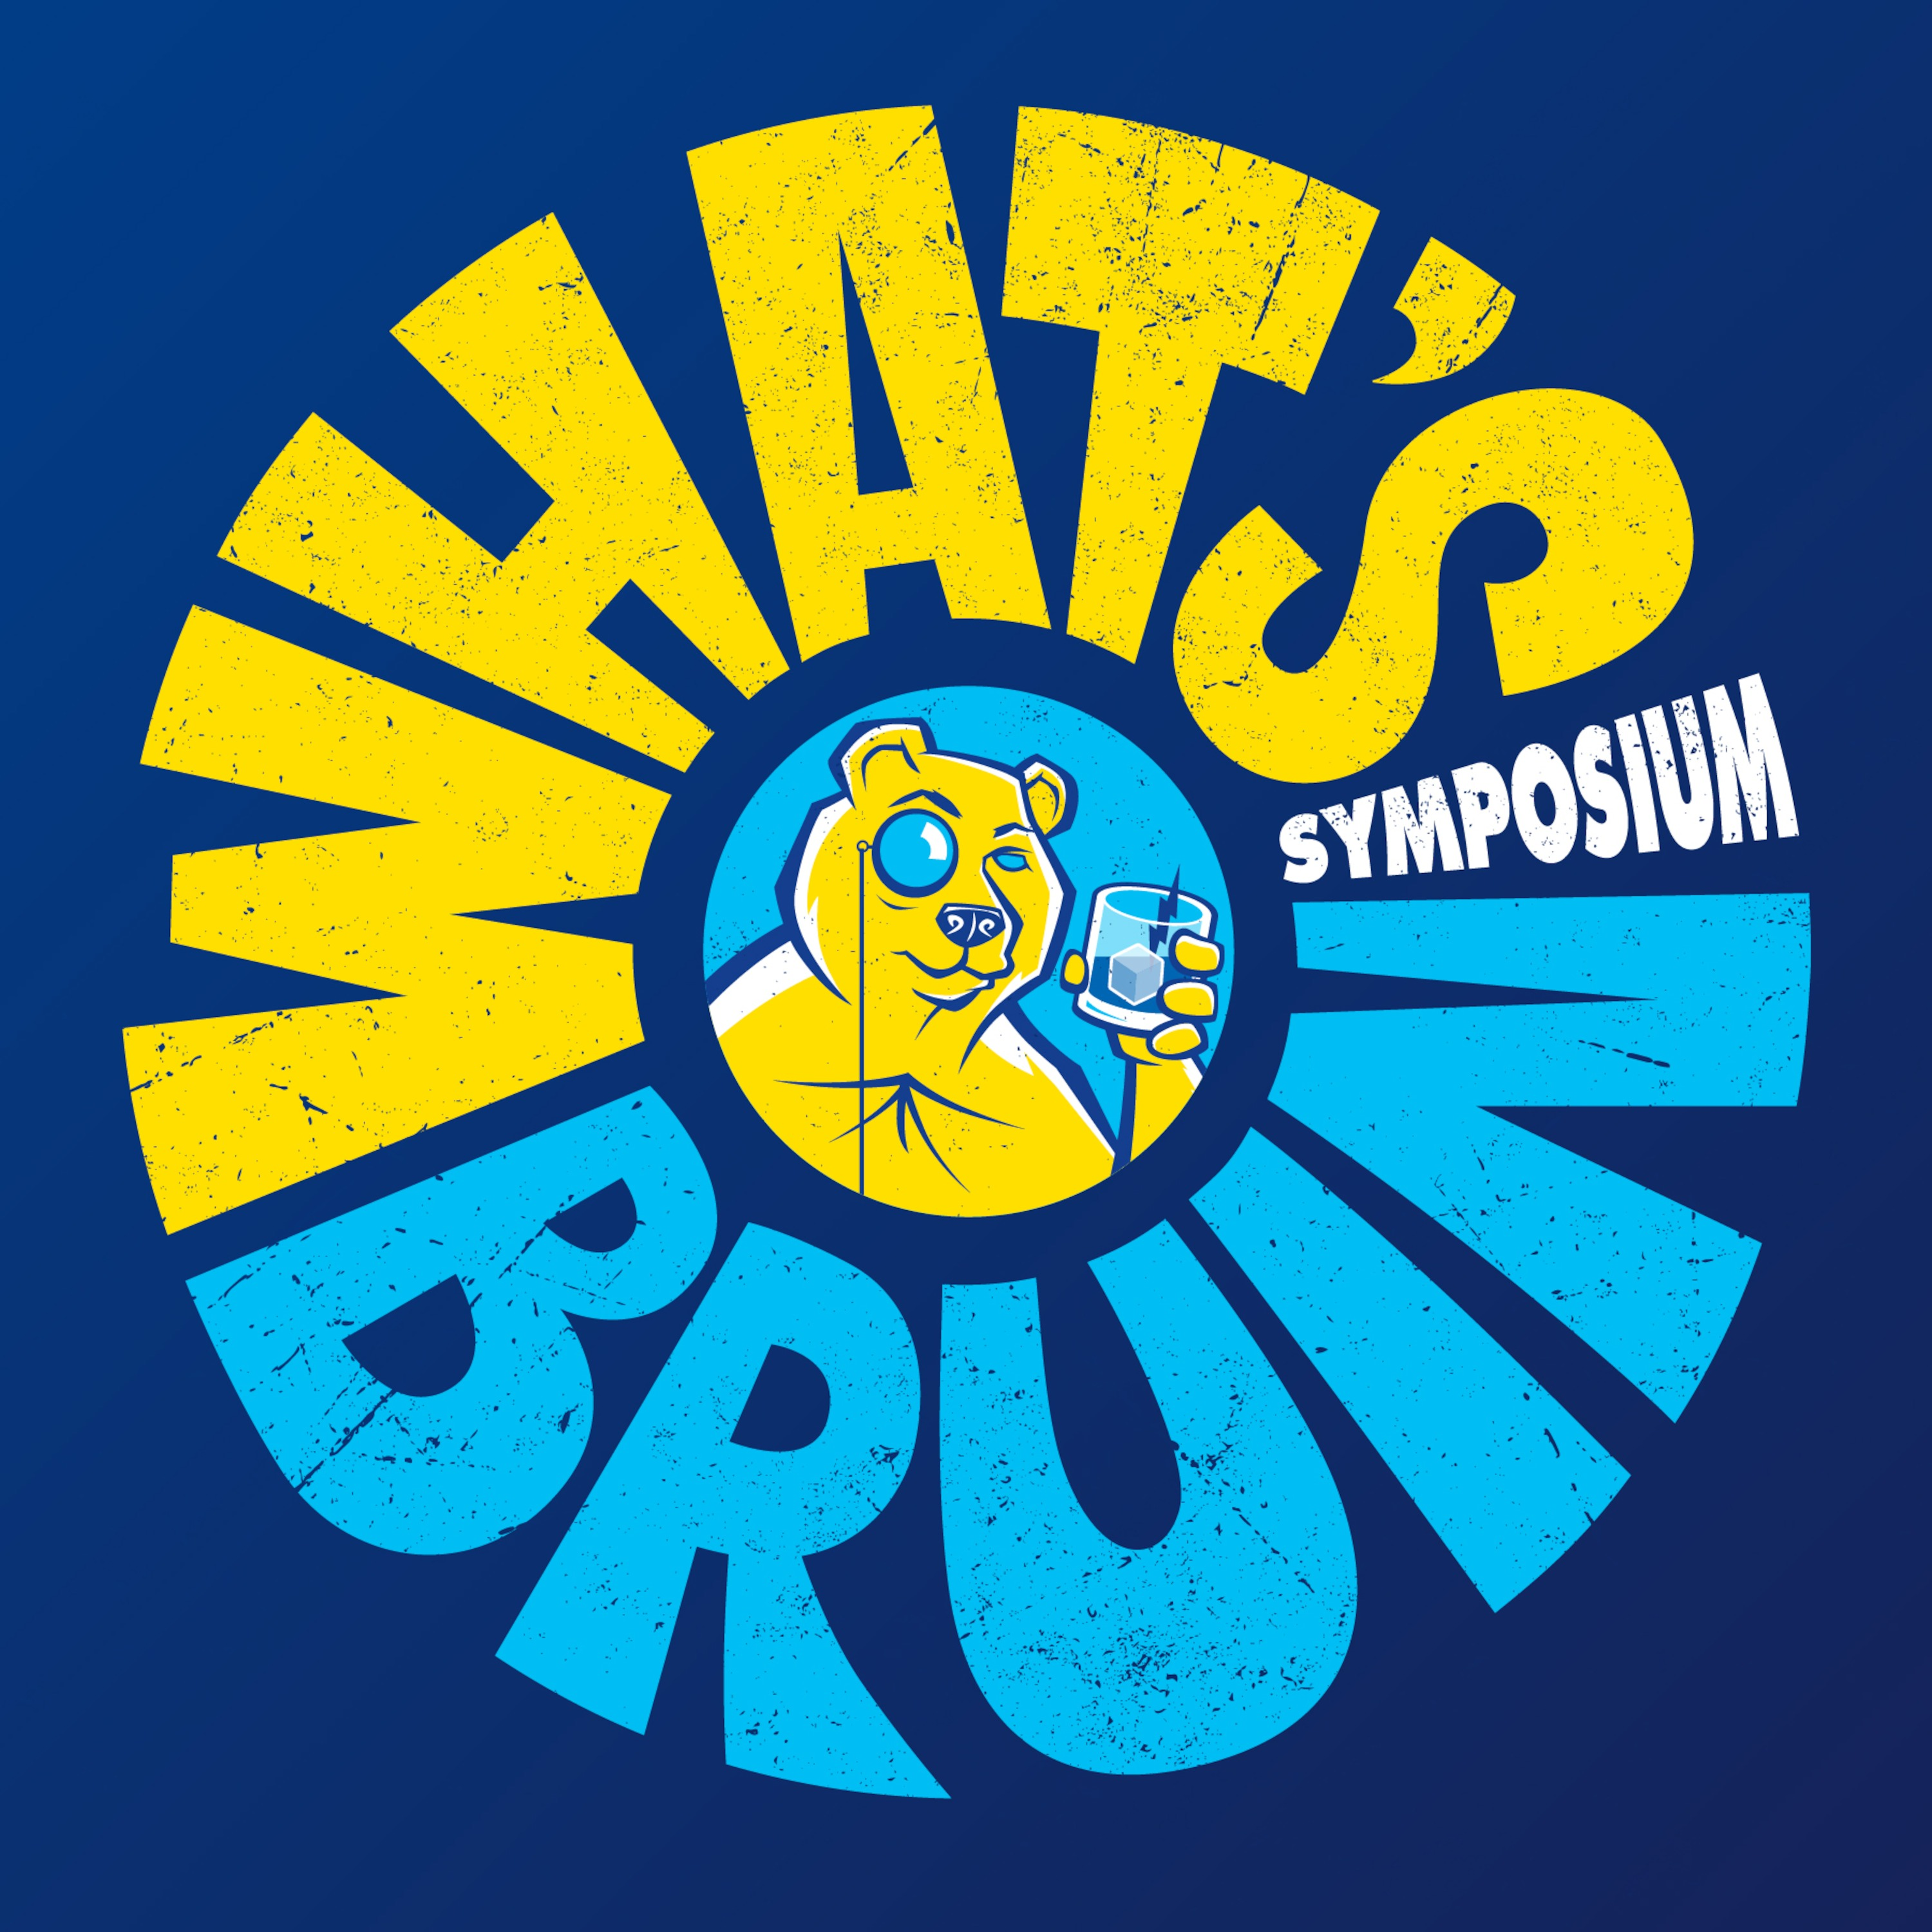 Episode 300: What's Bruin Symposium #300 - Mike is Running a Podcast Sweatshop